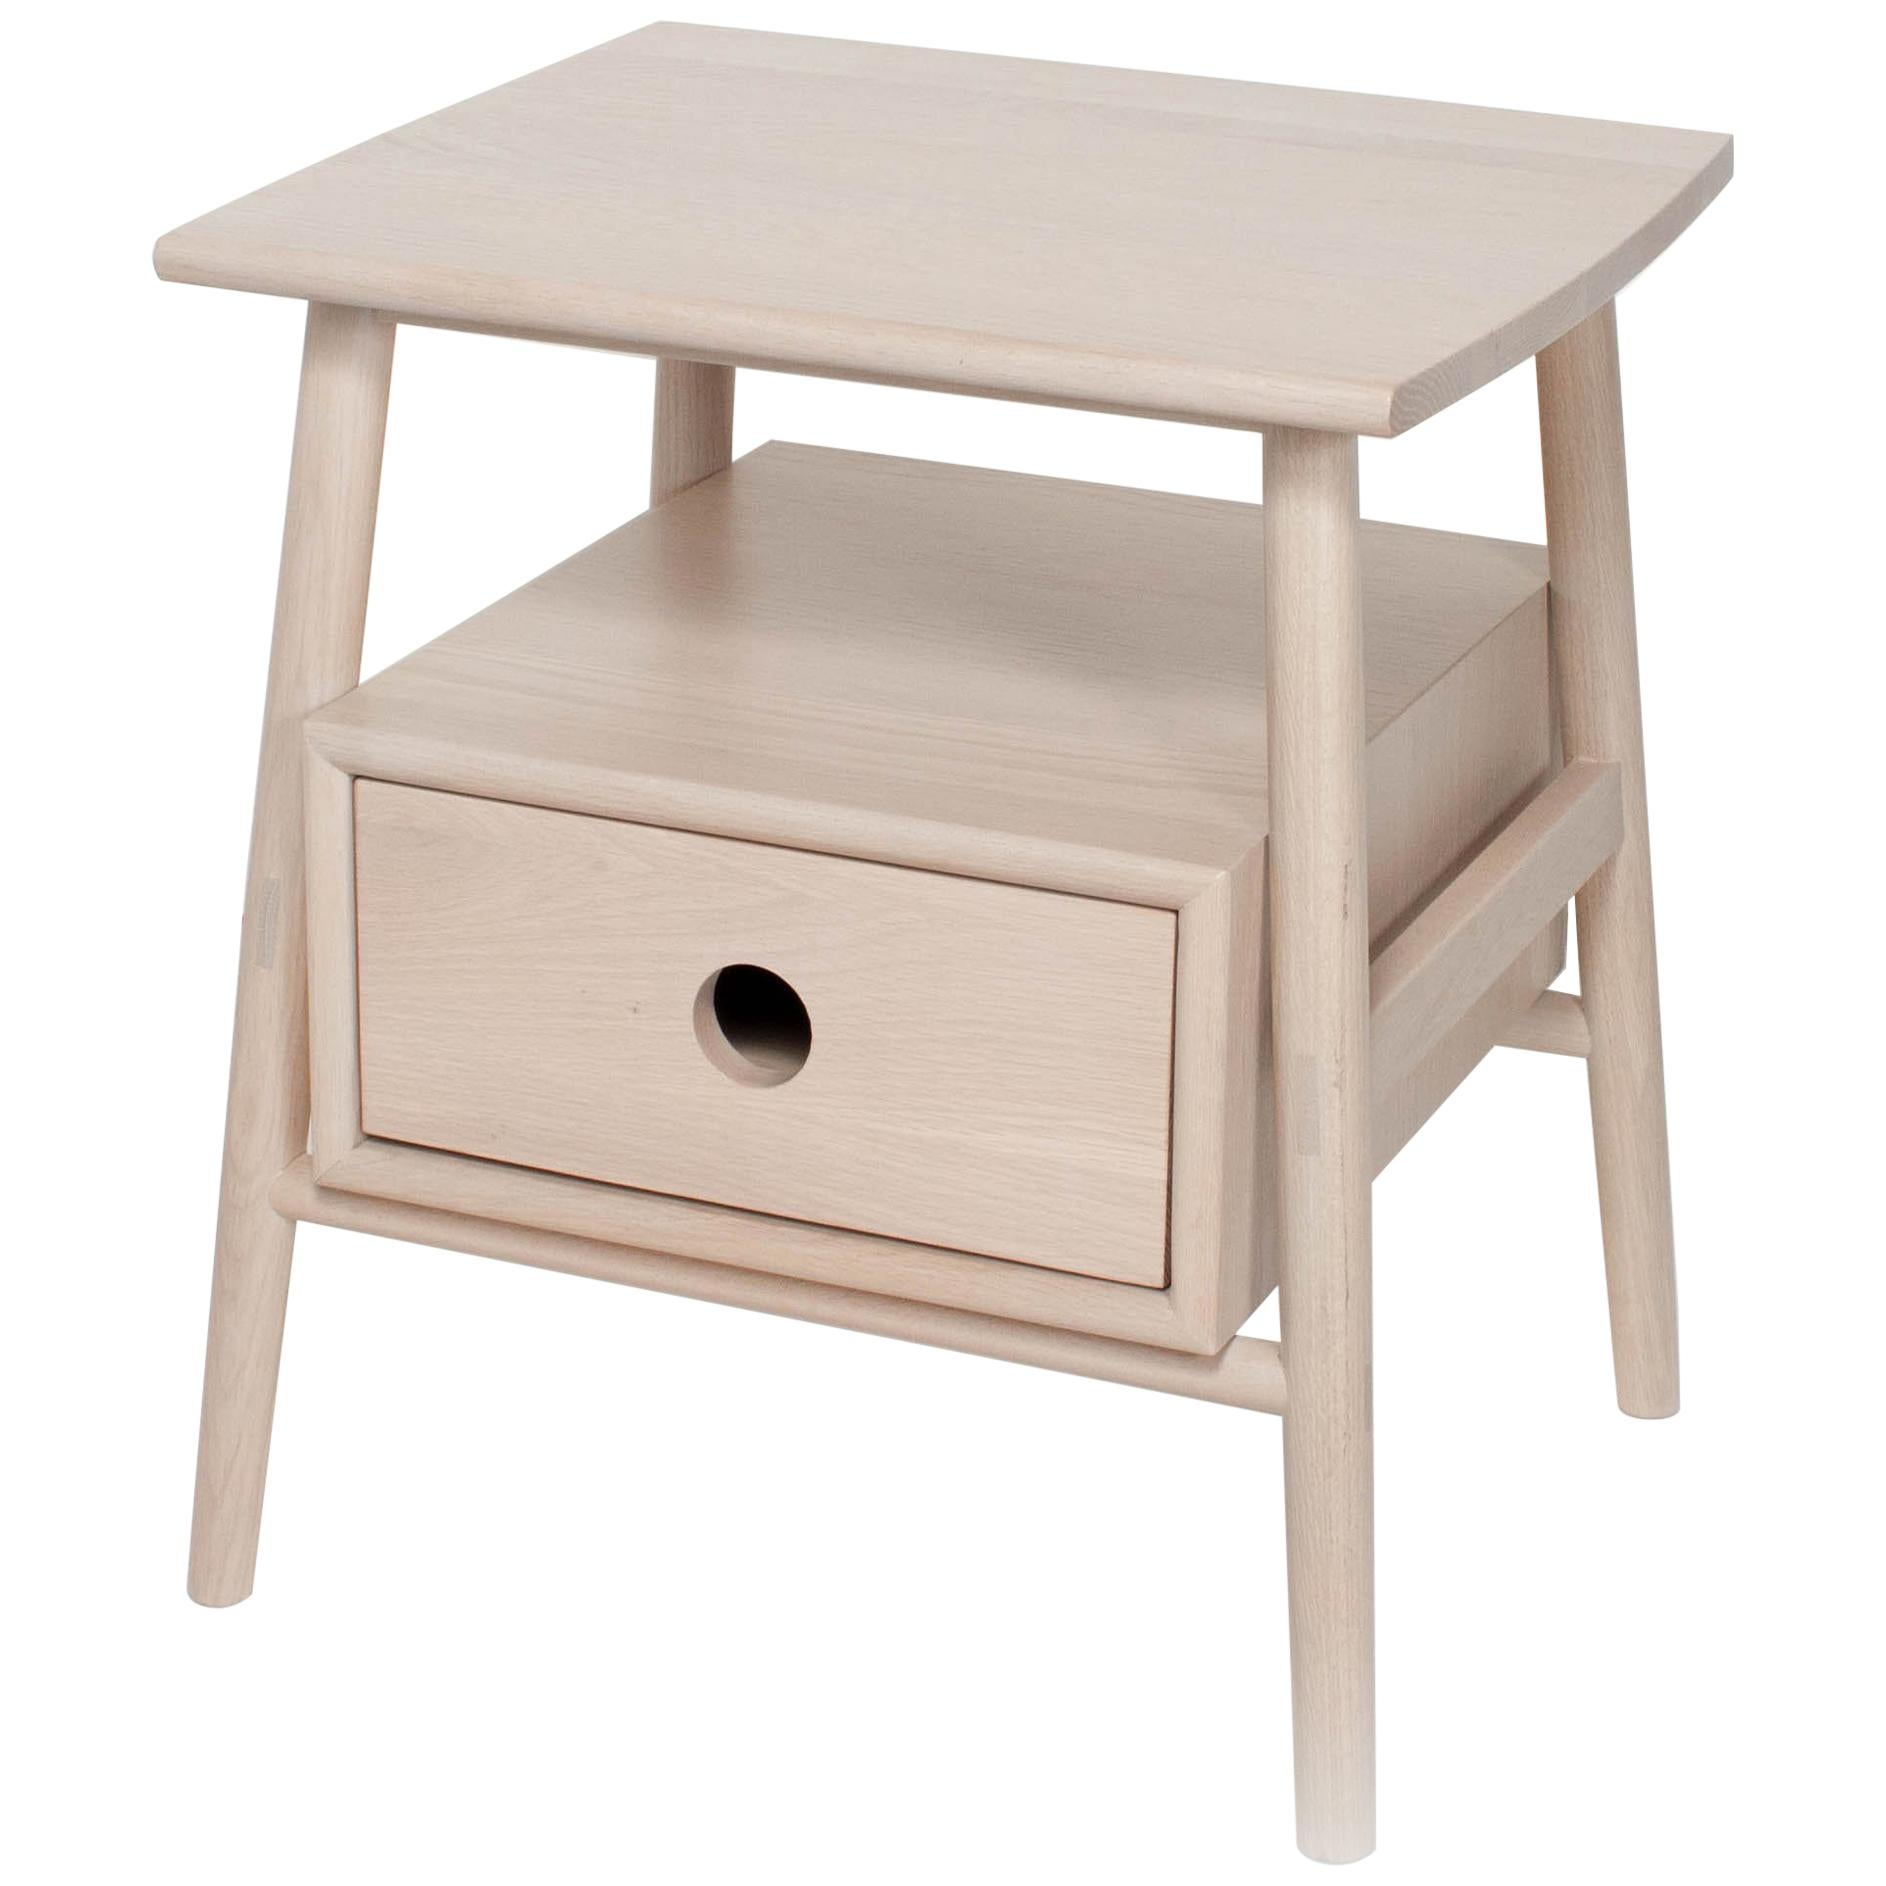 Sitka Side Table by Sun at Six, Nude, Minimalist Accent Table in Wood